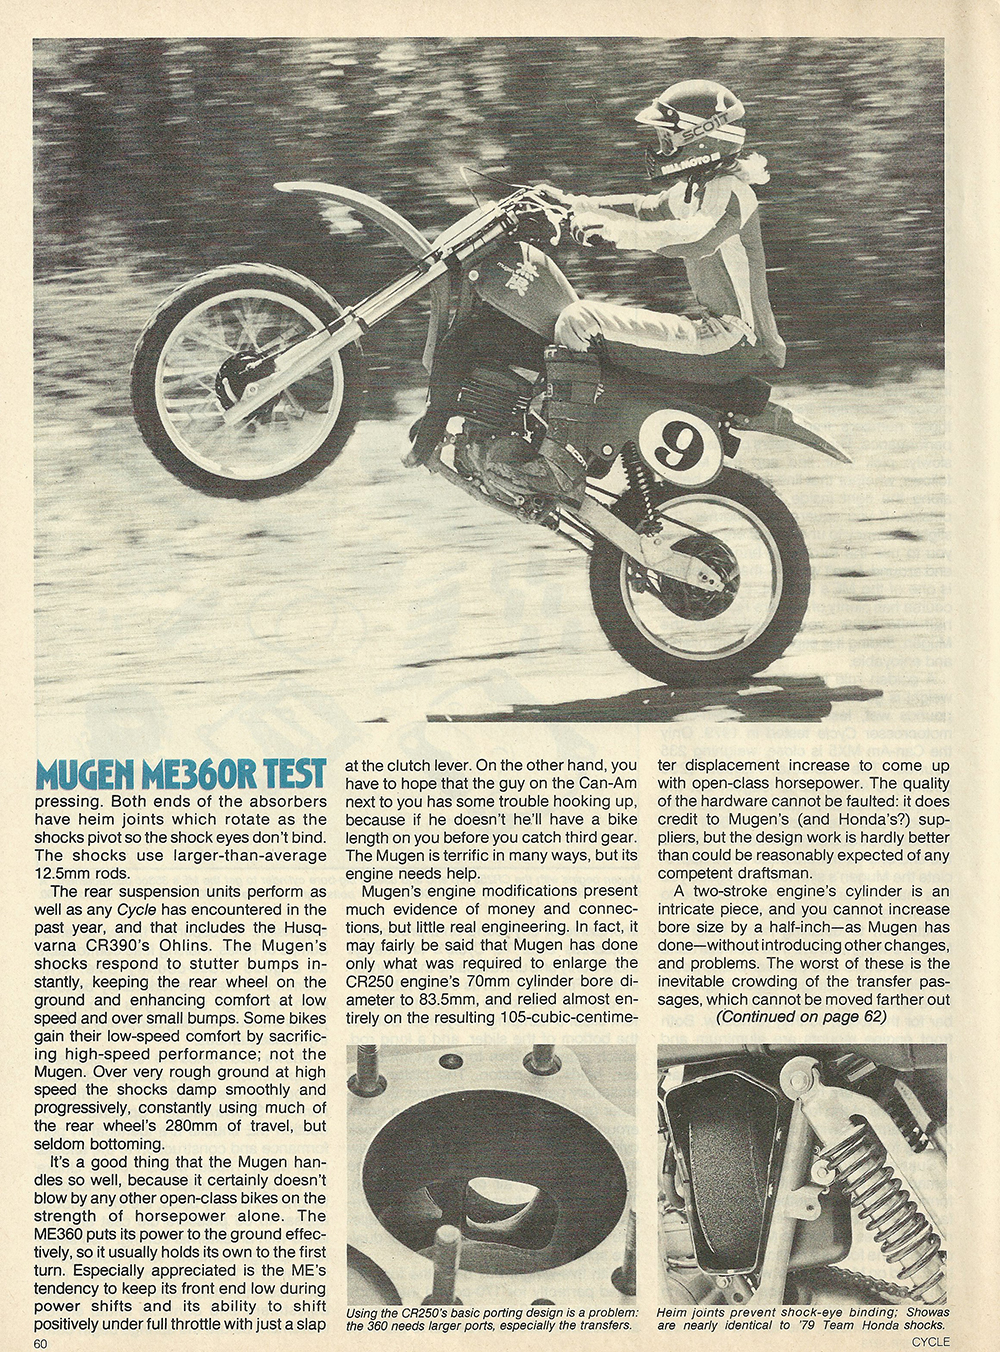 1980 Mugen ME360R off road test 5.JPG